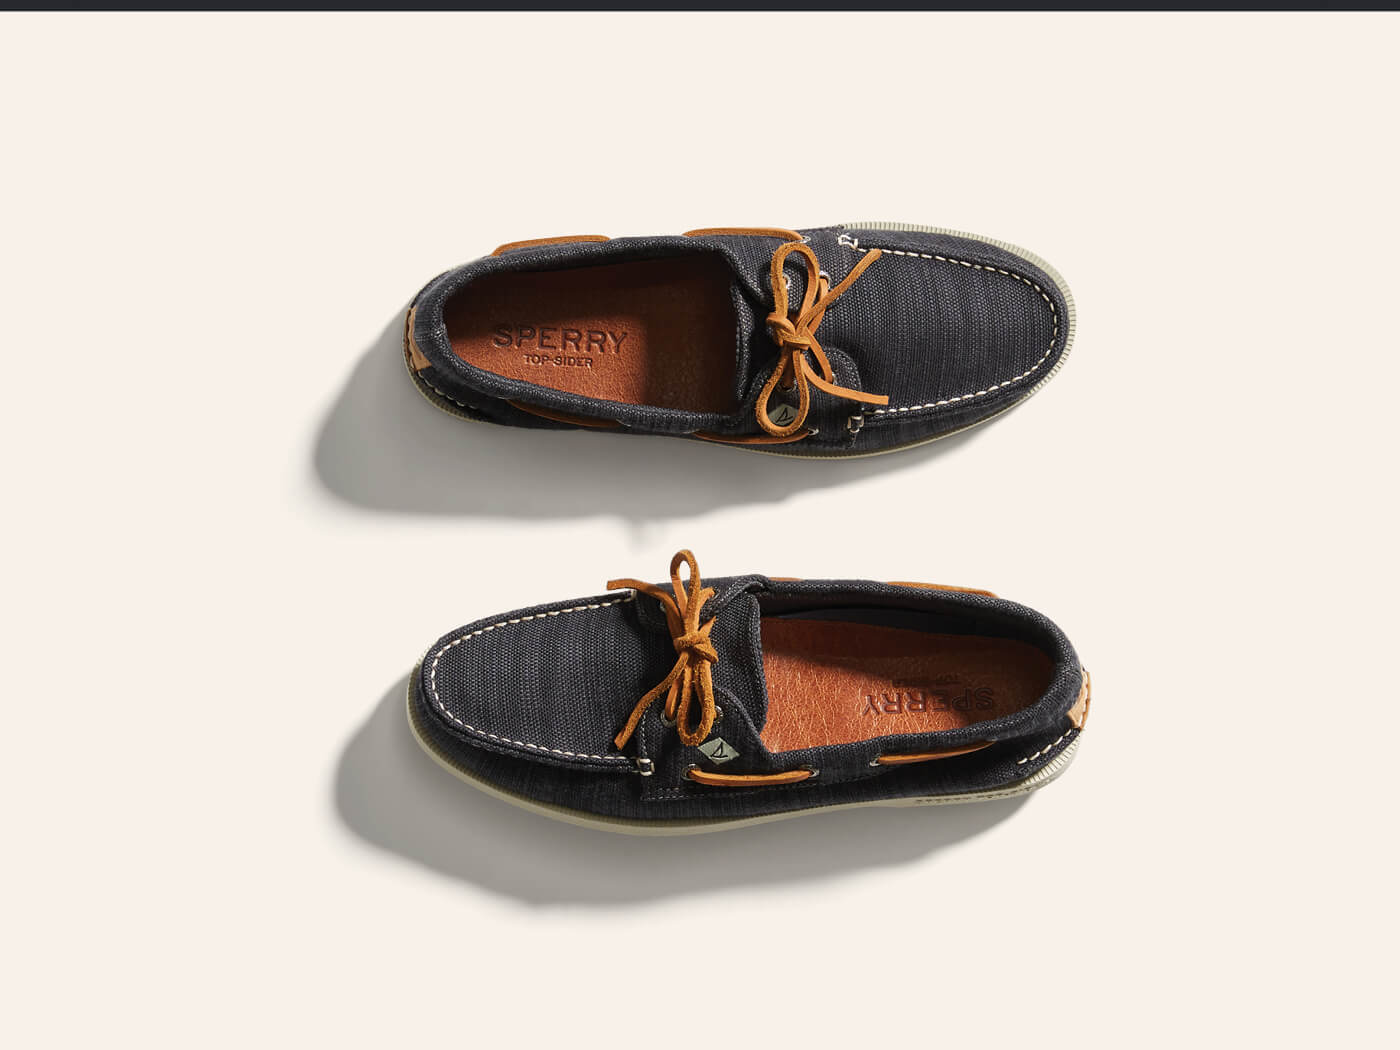 Wear Boat Shoes With Slub Shorts At Any Backyard Hang Or Match Them With Easy Chinos To Add Some Bizness To A Casual Look And Just Like Your Mandals